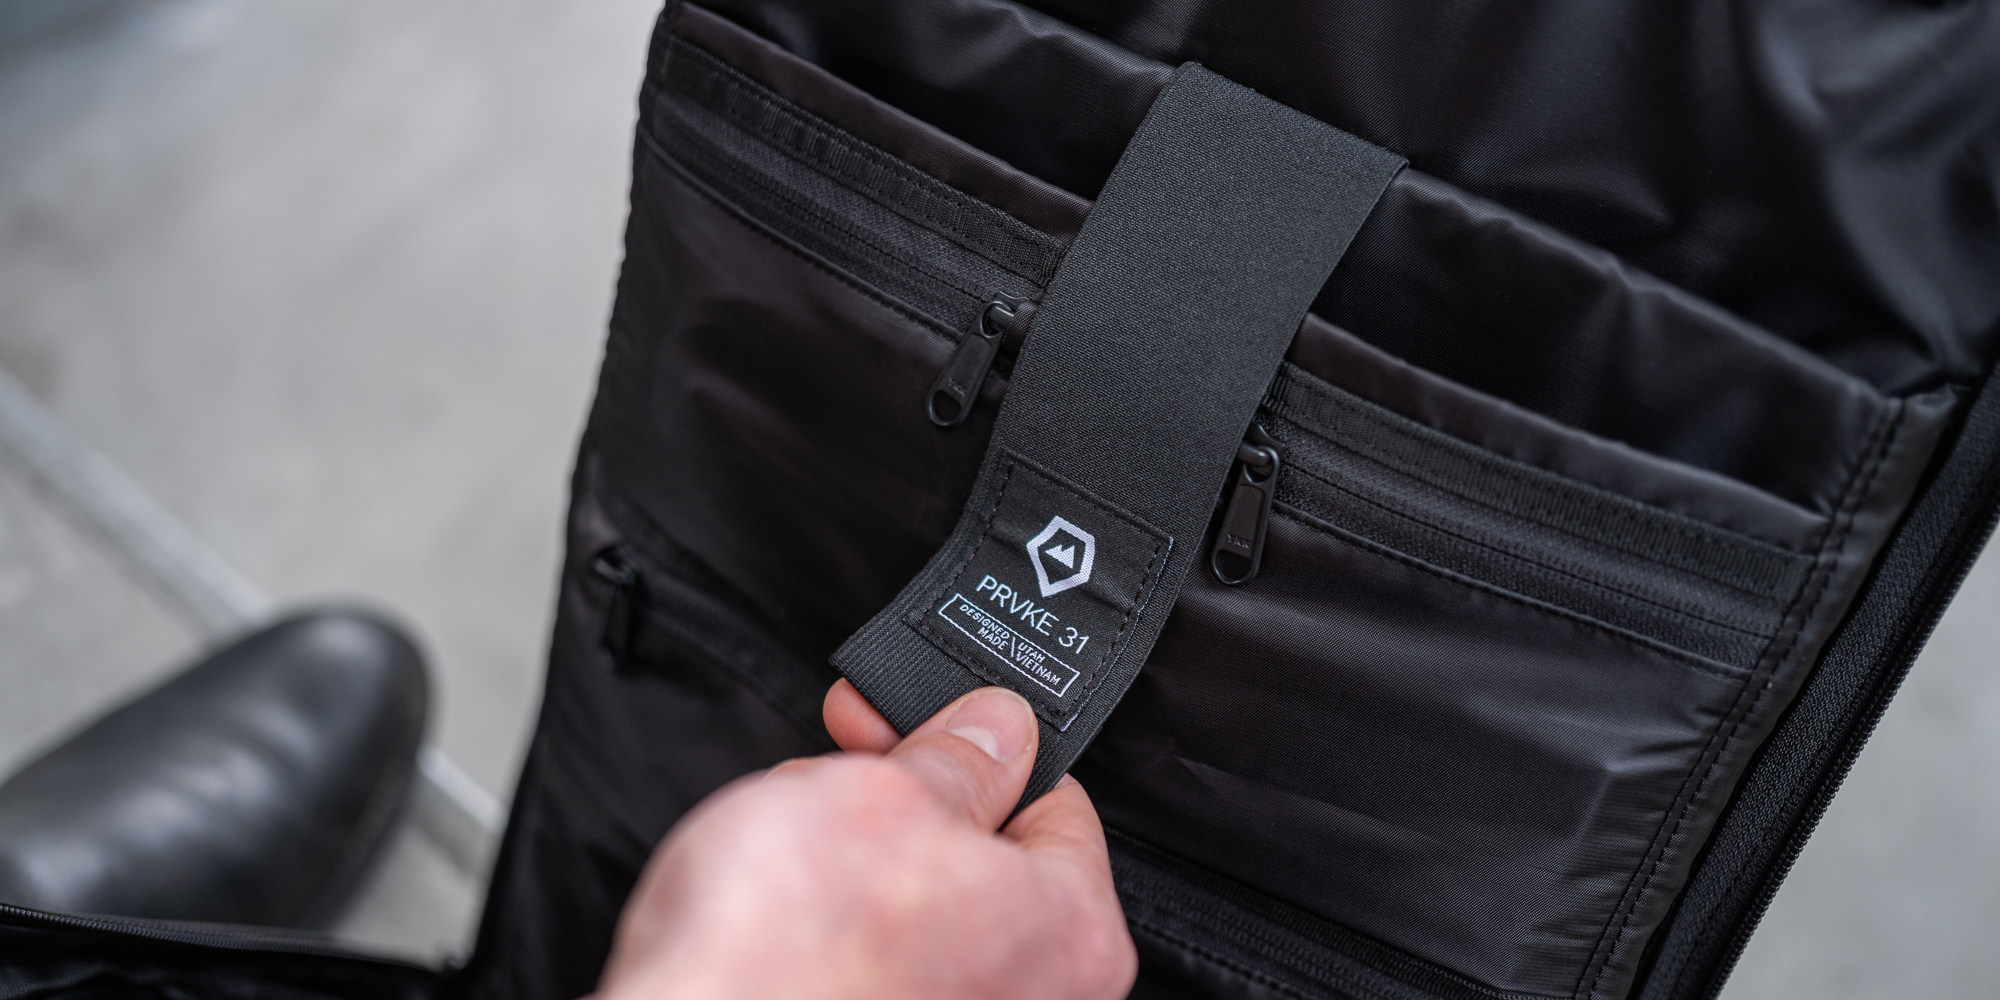 Wandrd All-new Prvke 31 Backpack - Tailored to Your Needs